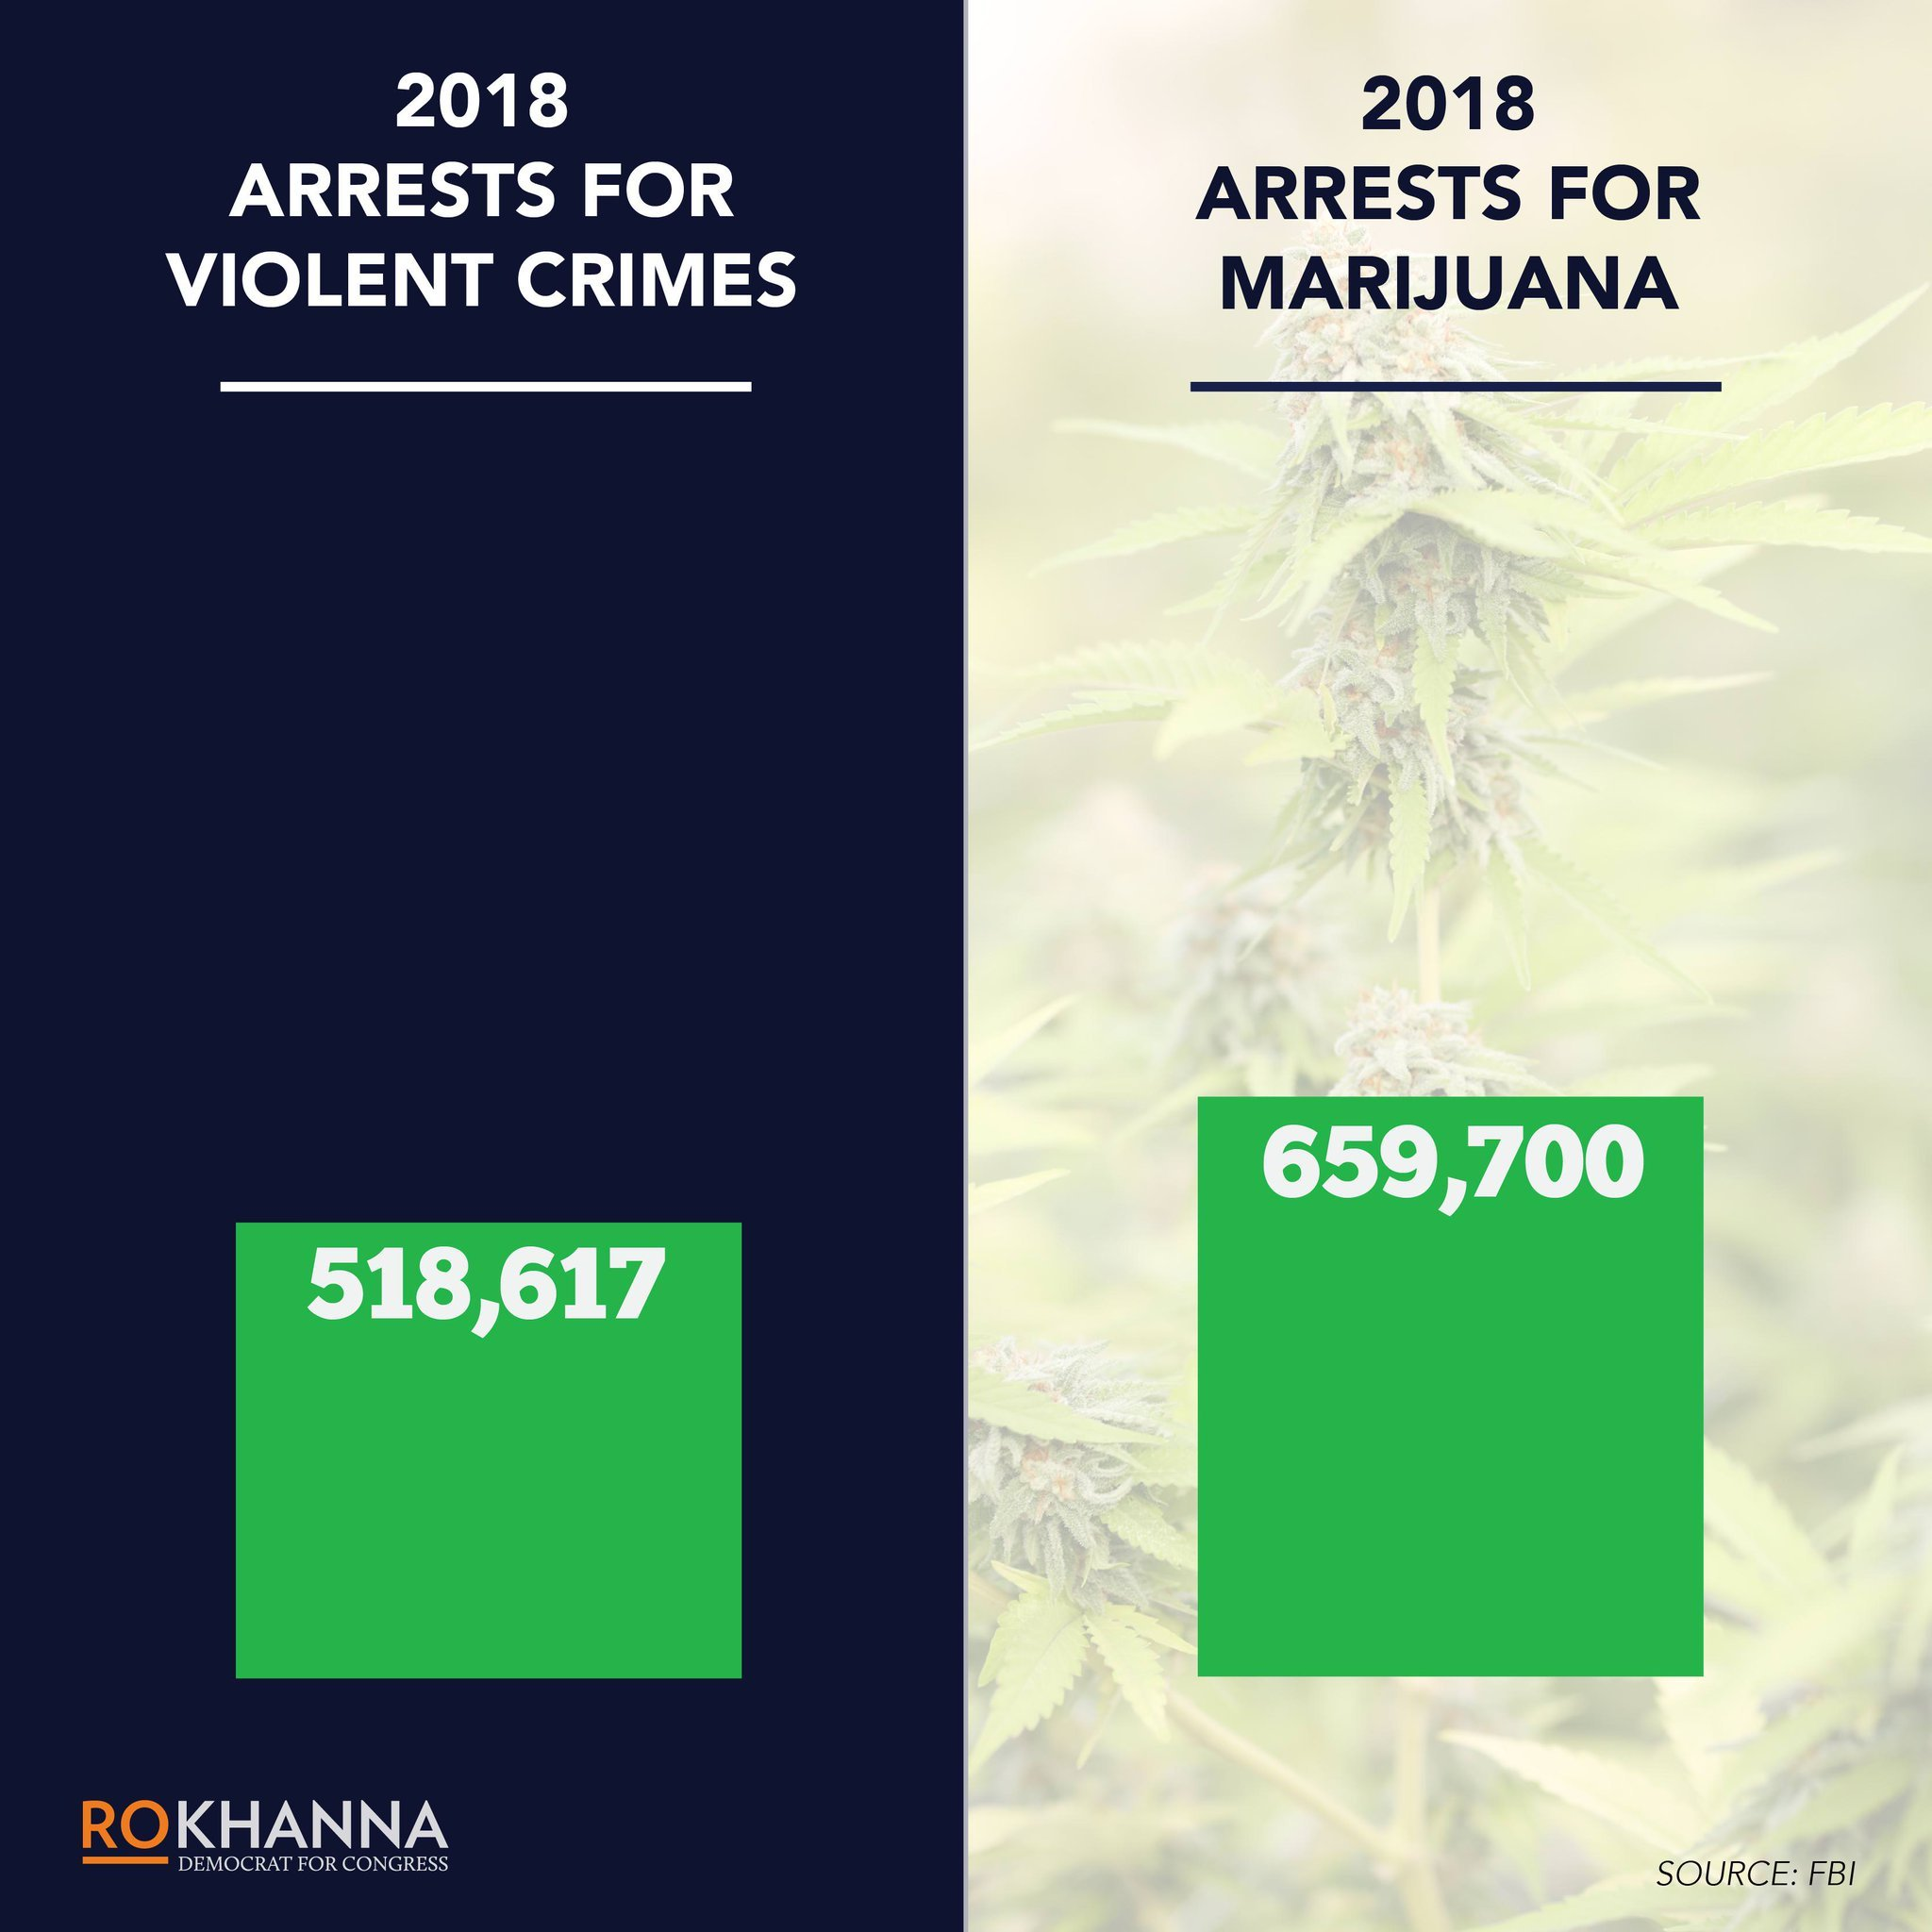 """Congressman: """"When more Americans are arrested for marijuana than for committing violent crimes, it's clear that the priorities of our justice system are completely out of order."""""""